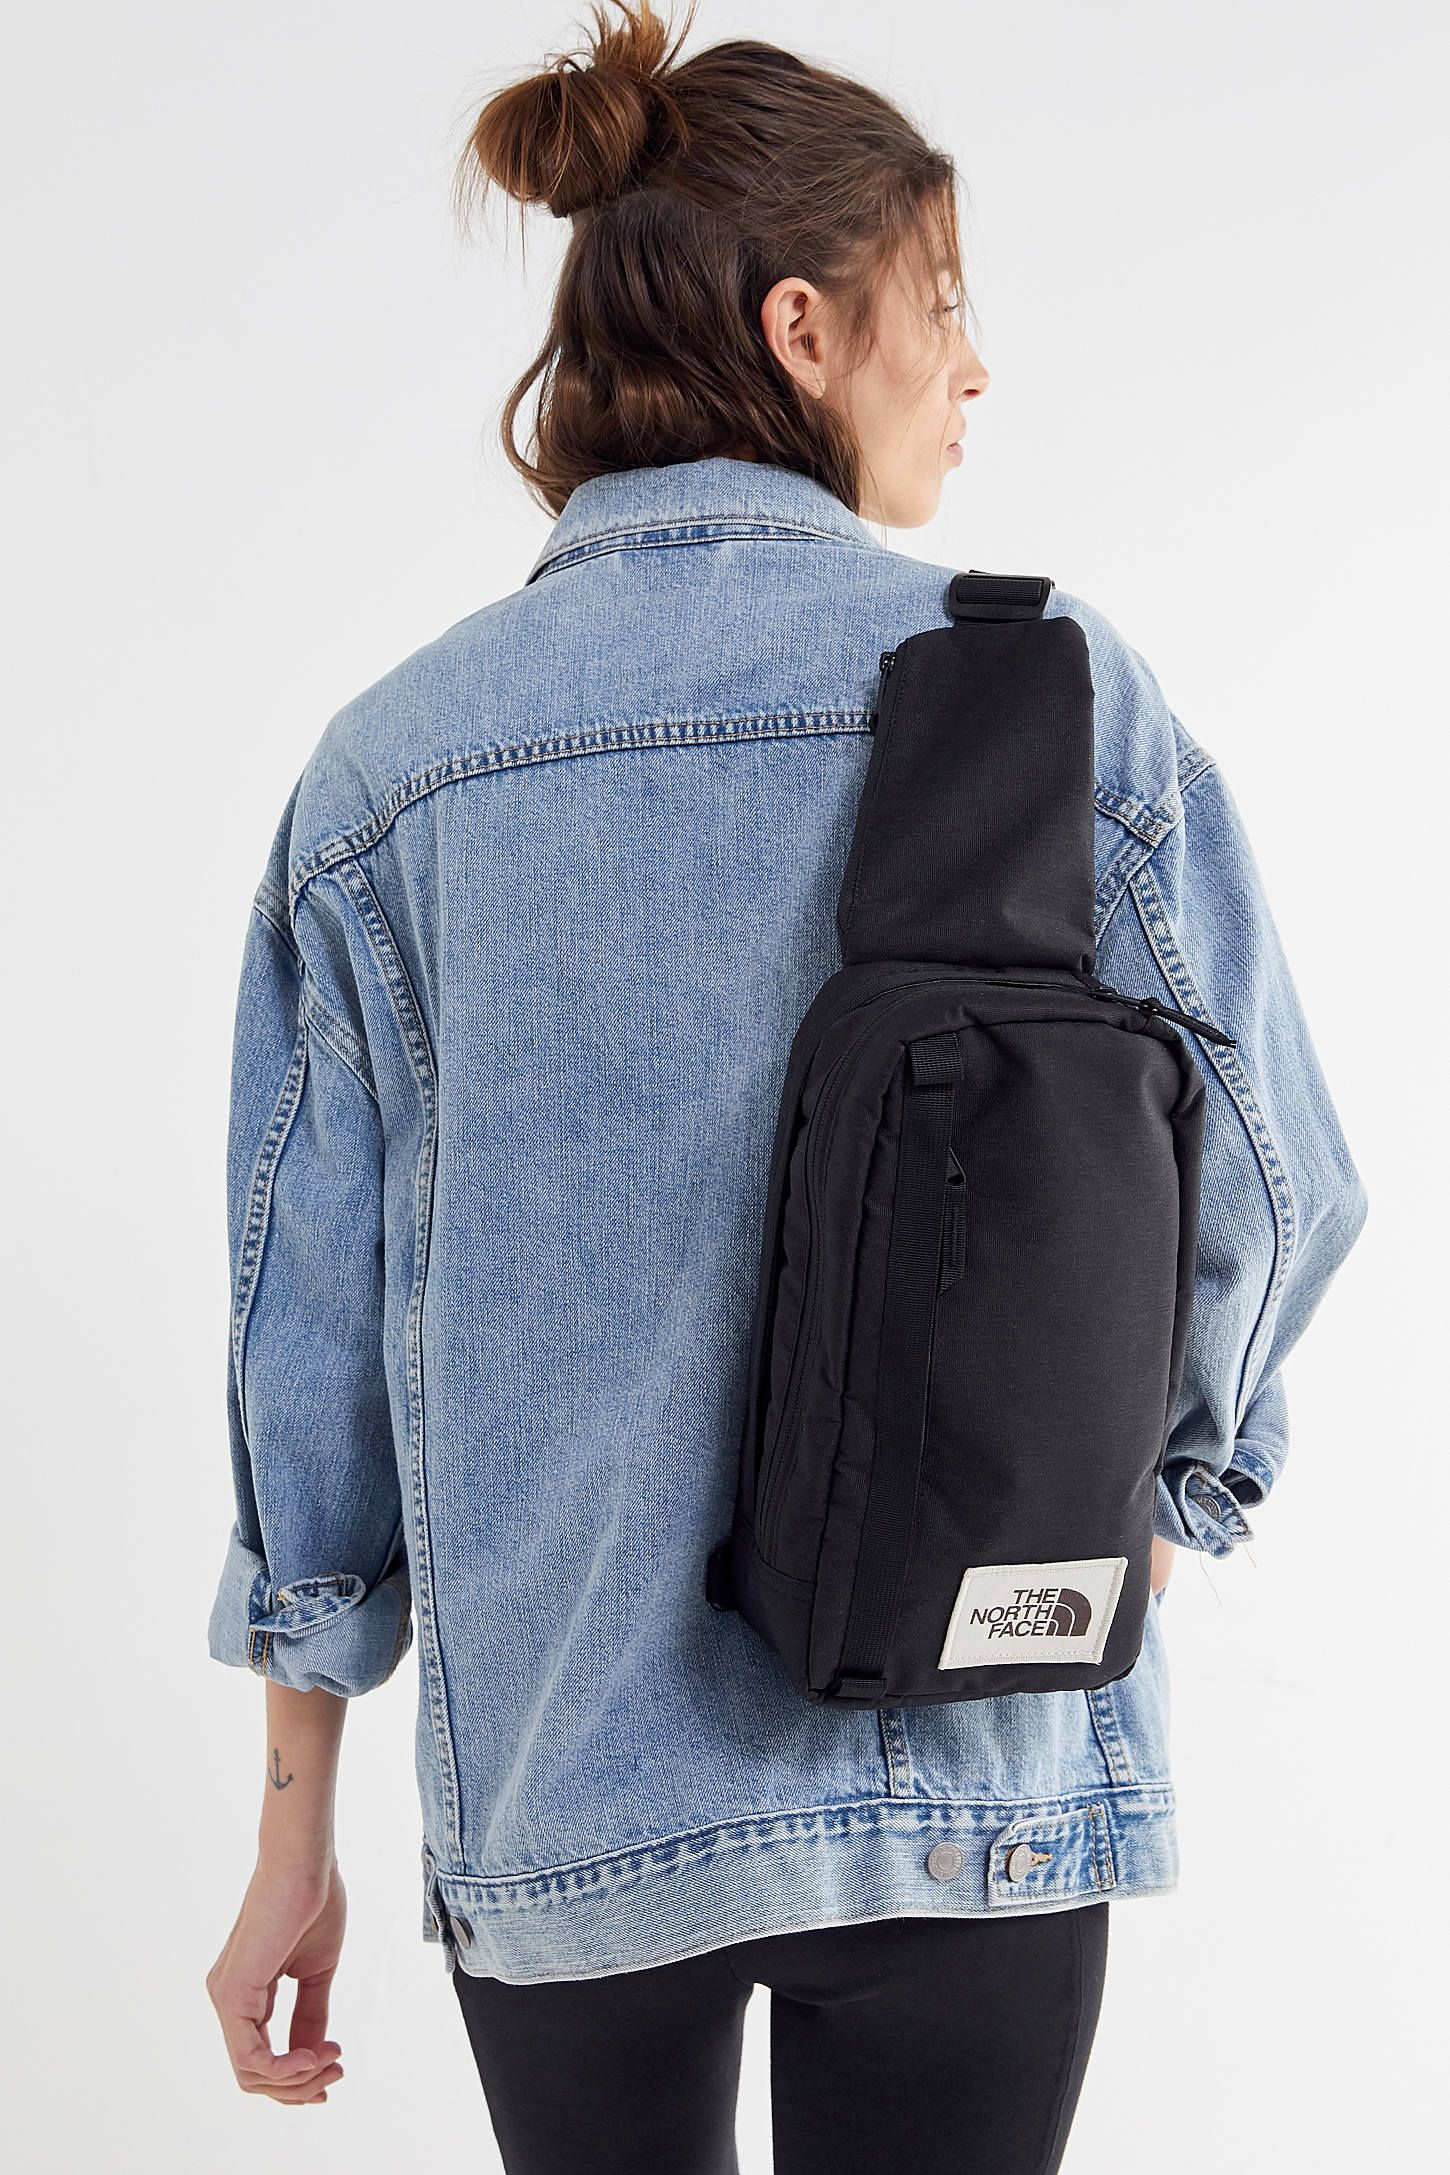 98b3a7816b0 The North Face Field Crossbody Bag in 2019 | Clothes | Bags ...